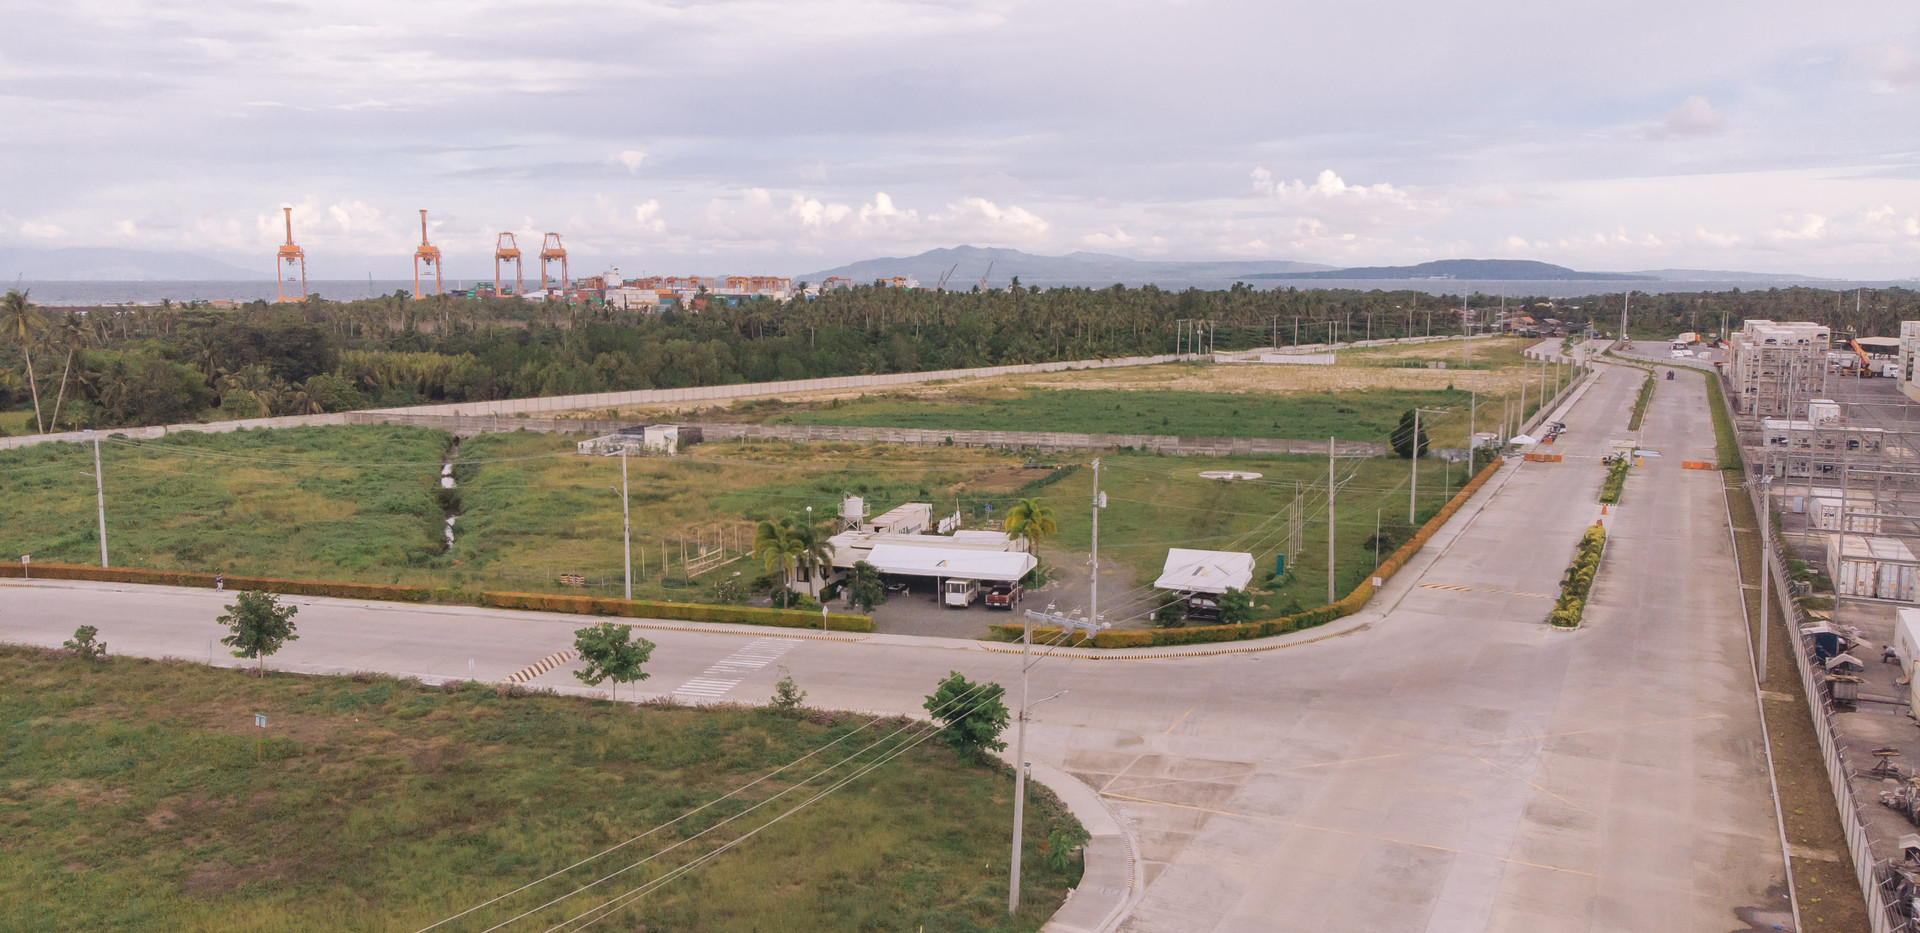 AIE Aerial View of Admin Building and Main Entrance Road